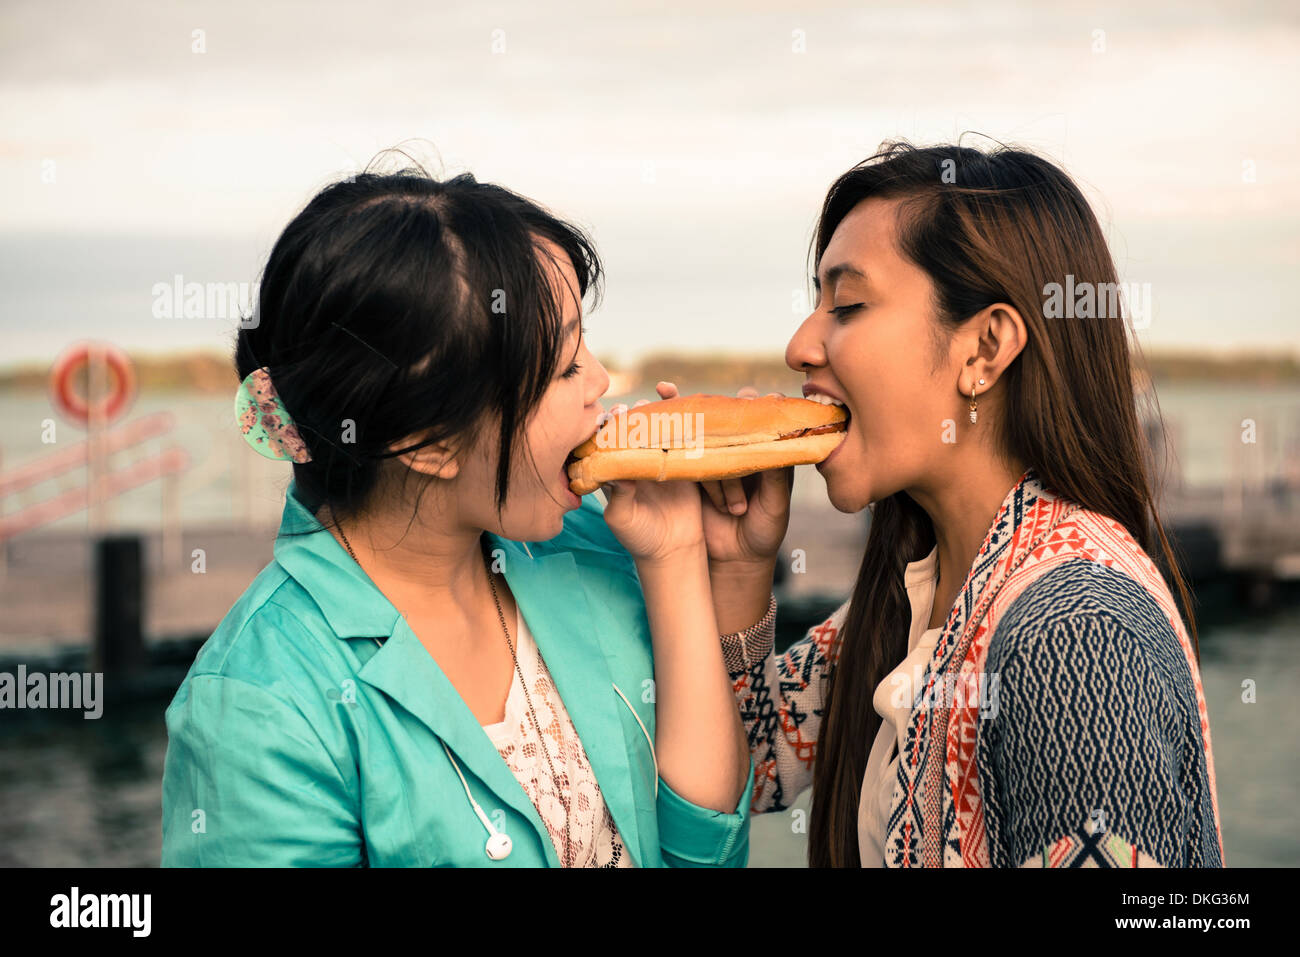 Young women biting opposite ends of sandwich - Stock Image